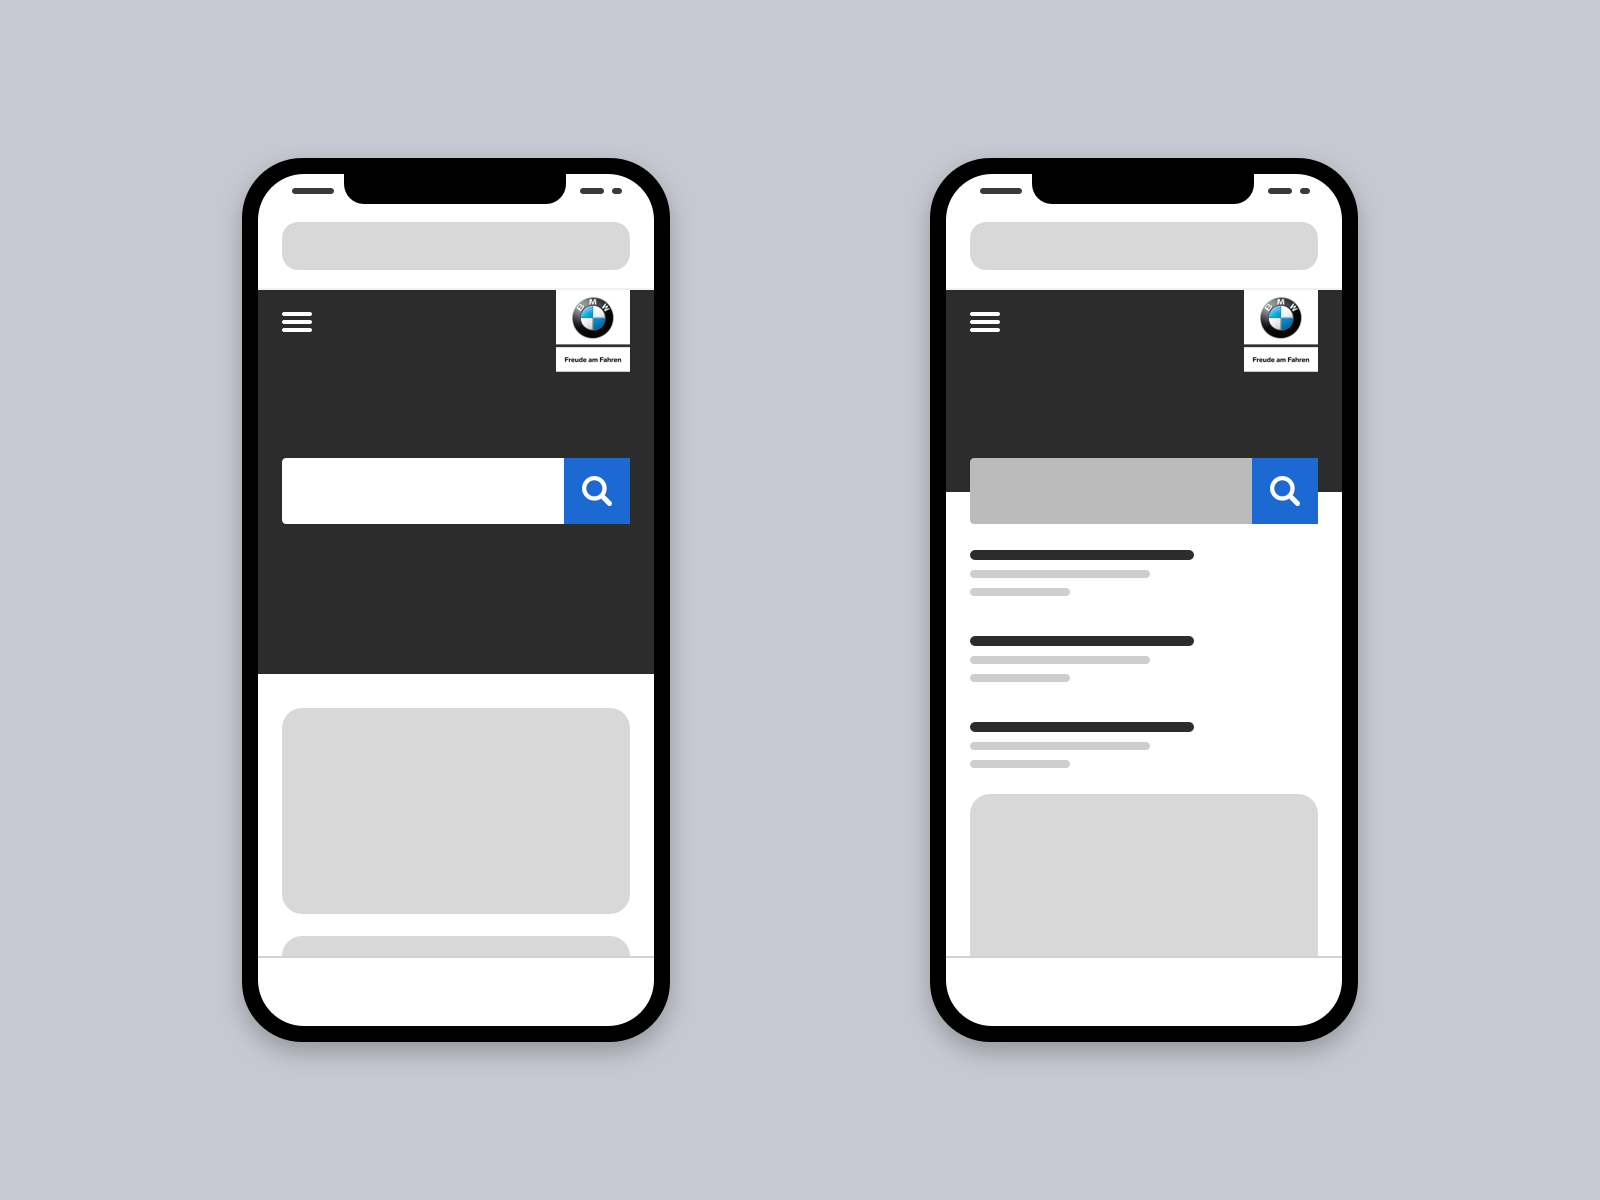 Low-fidelity Wireframe: Search